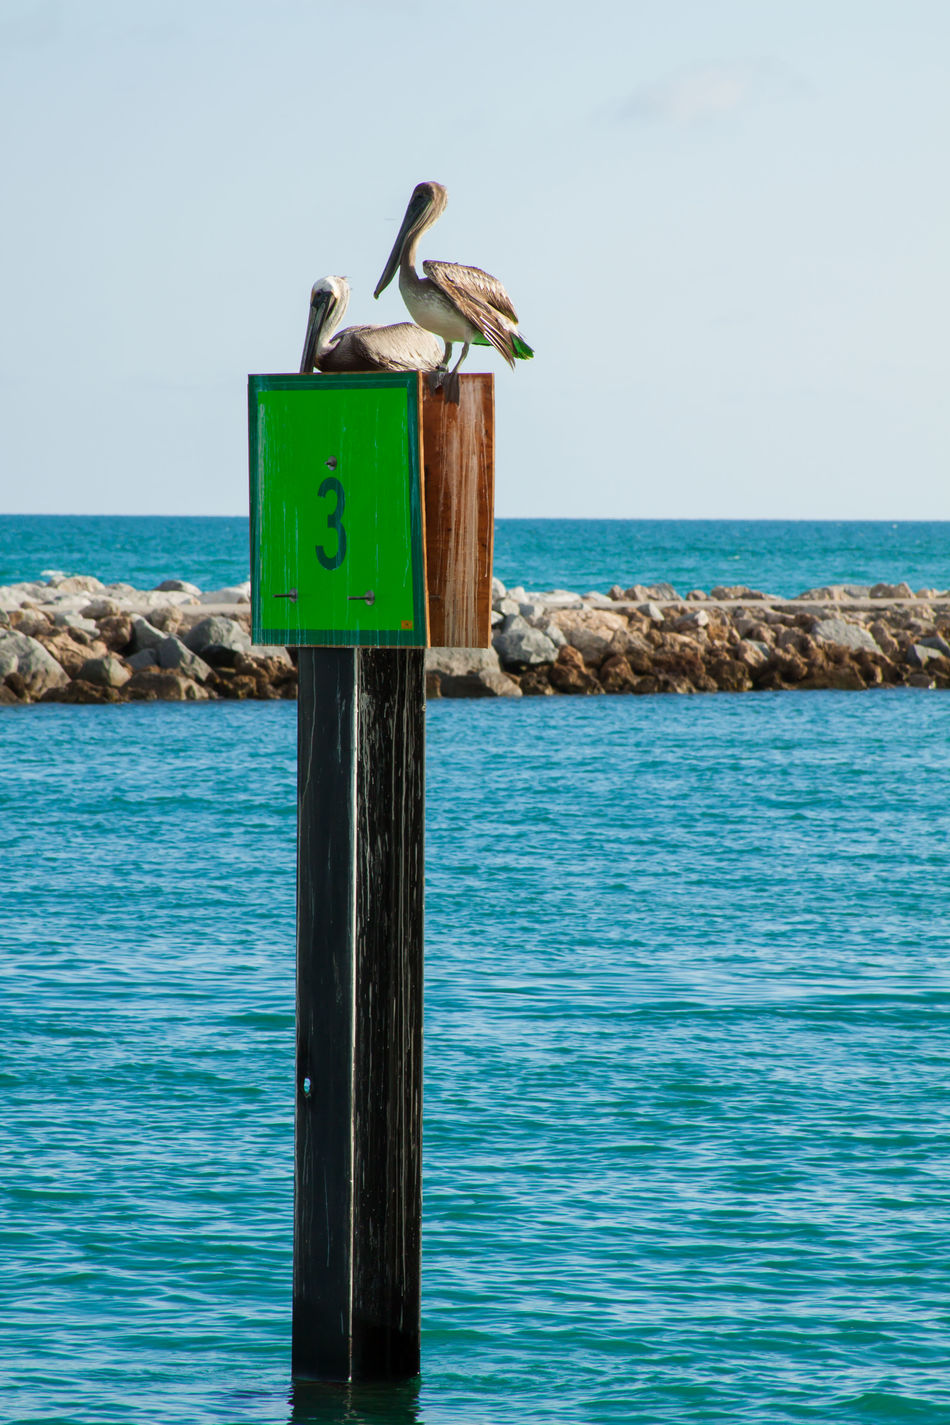 Animal Themes Animals In The Wild Beauty In Nature Bird Brown Pelicans Clear Sky Horizon Over Water Nature Outdoors Rocks And Water Scenics Sea Tranquil Scene Tranquility Water Wildlife Wooden Post